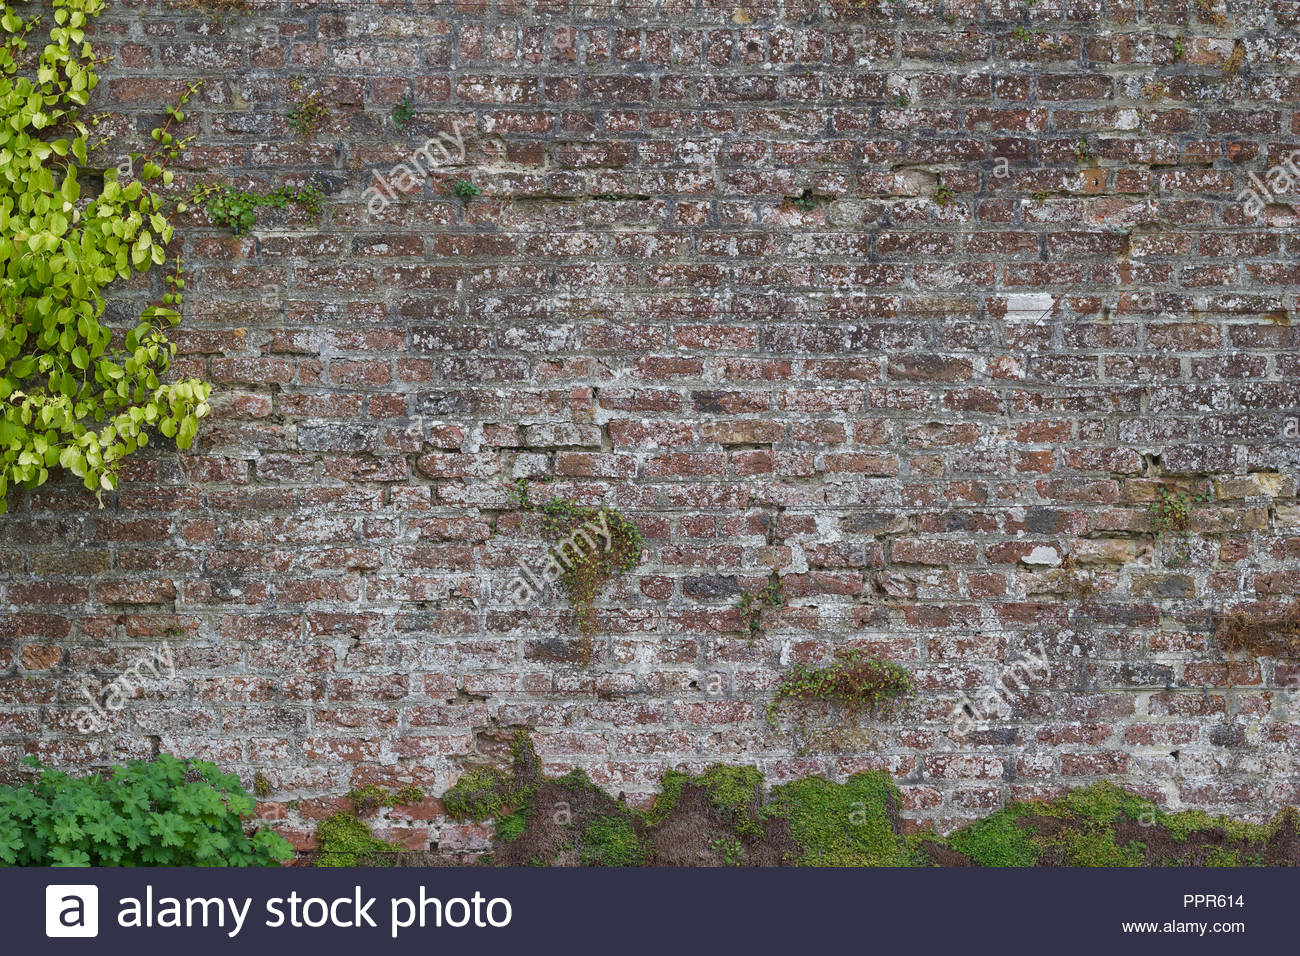 Brick wall background featuring a centuries old grey color brick 1300x956